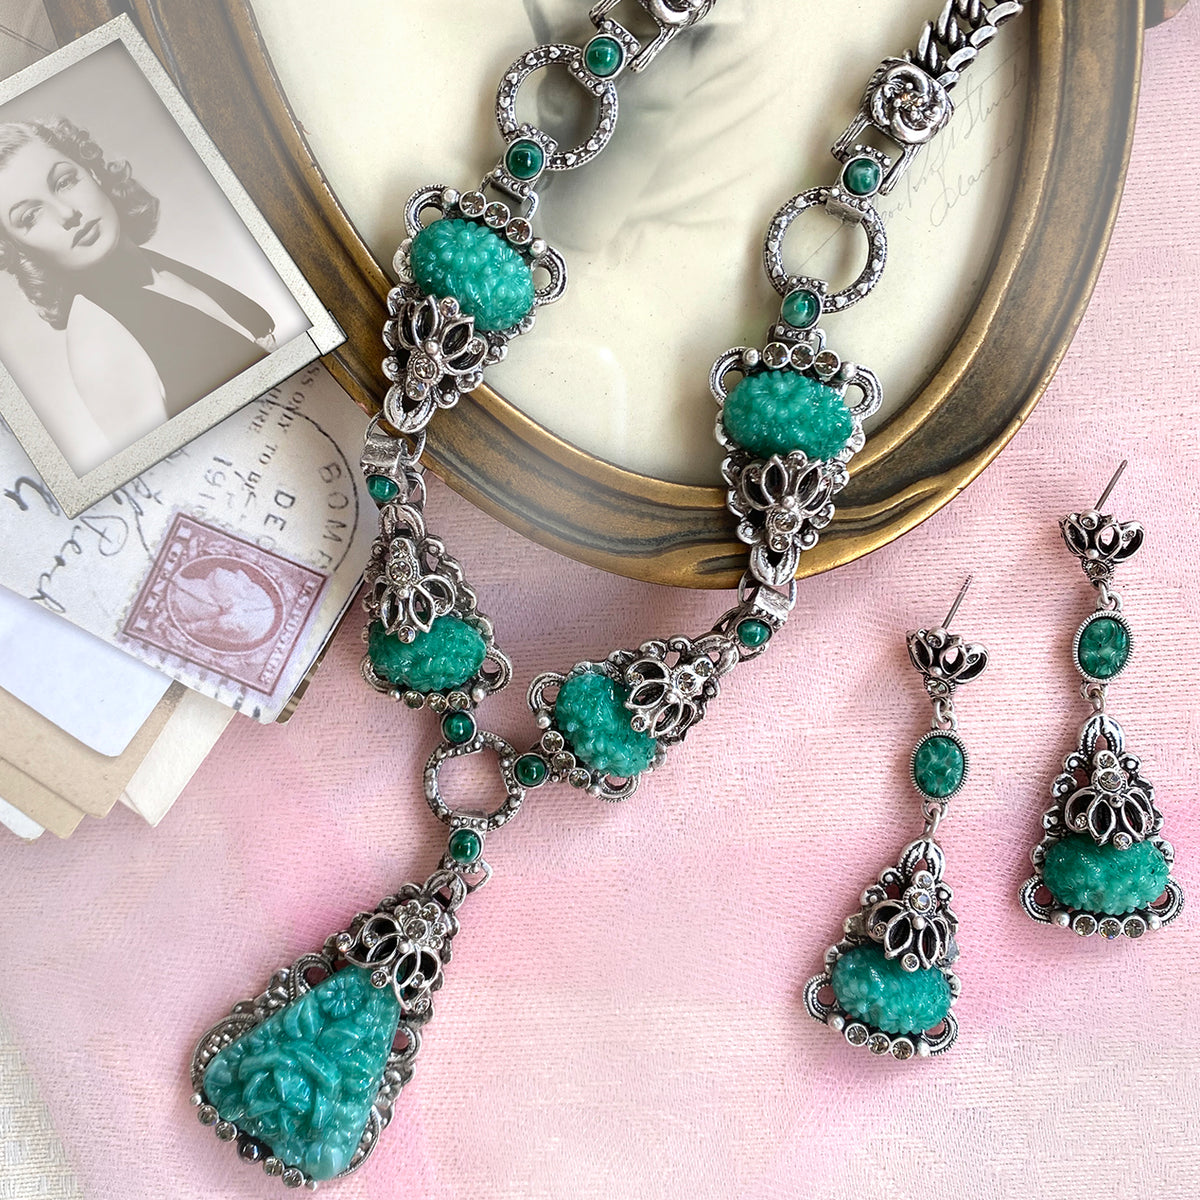 Art Deco Vintage Green Jade Glass Necklace and Earrings  N1095